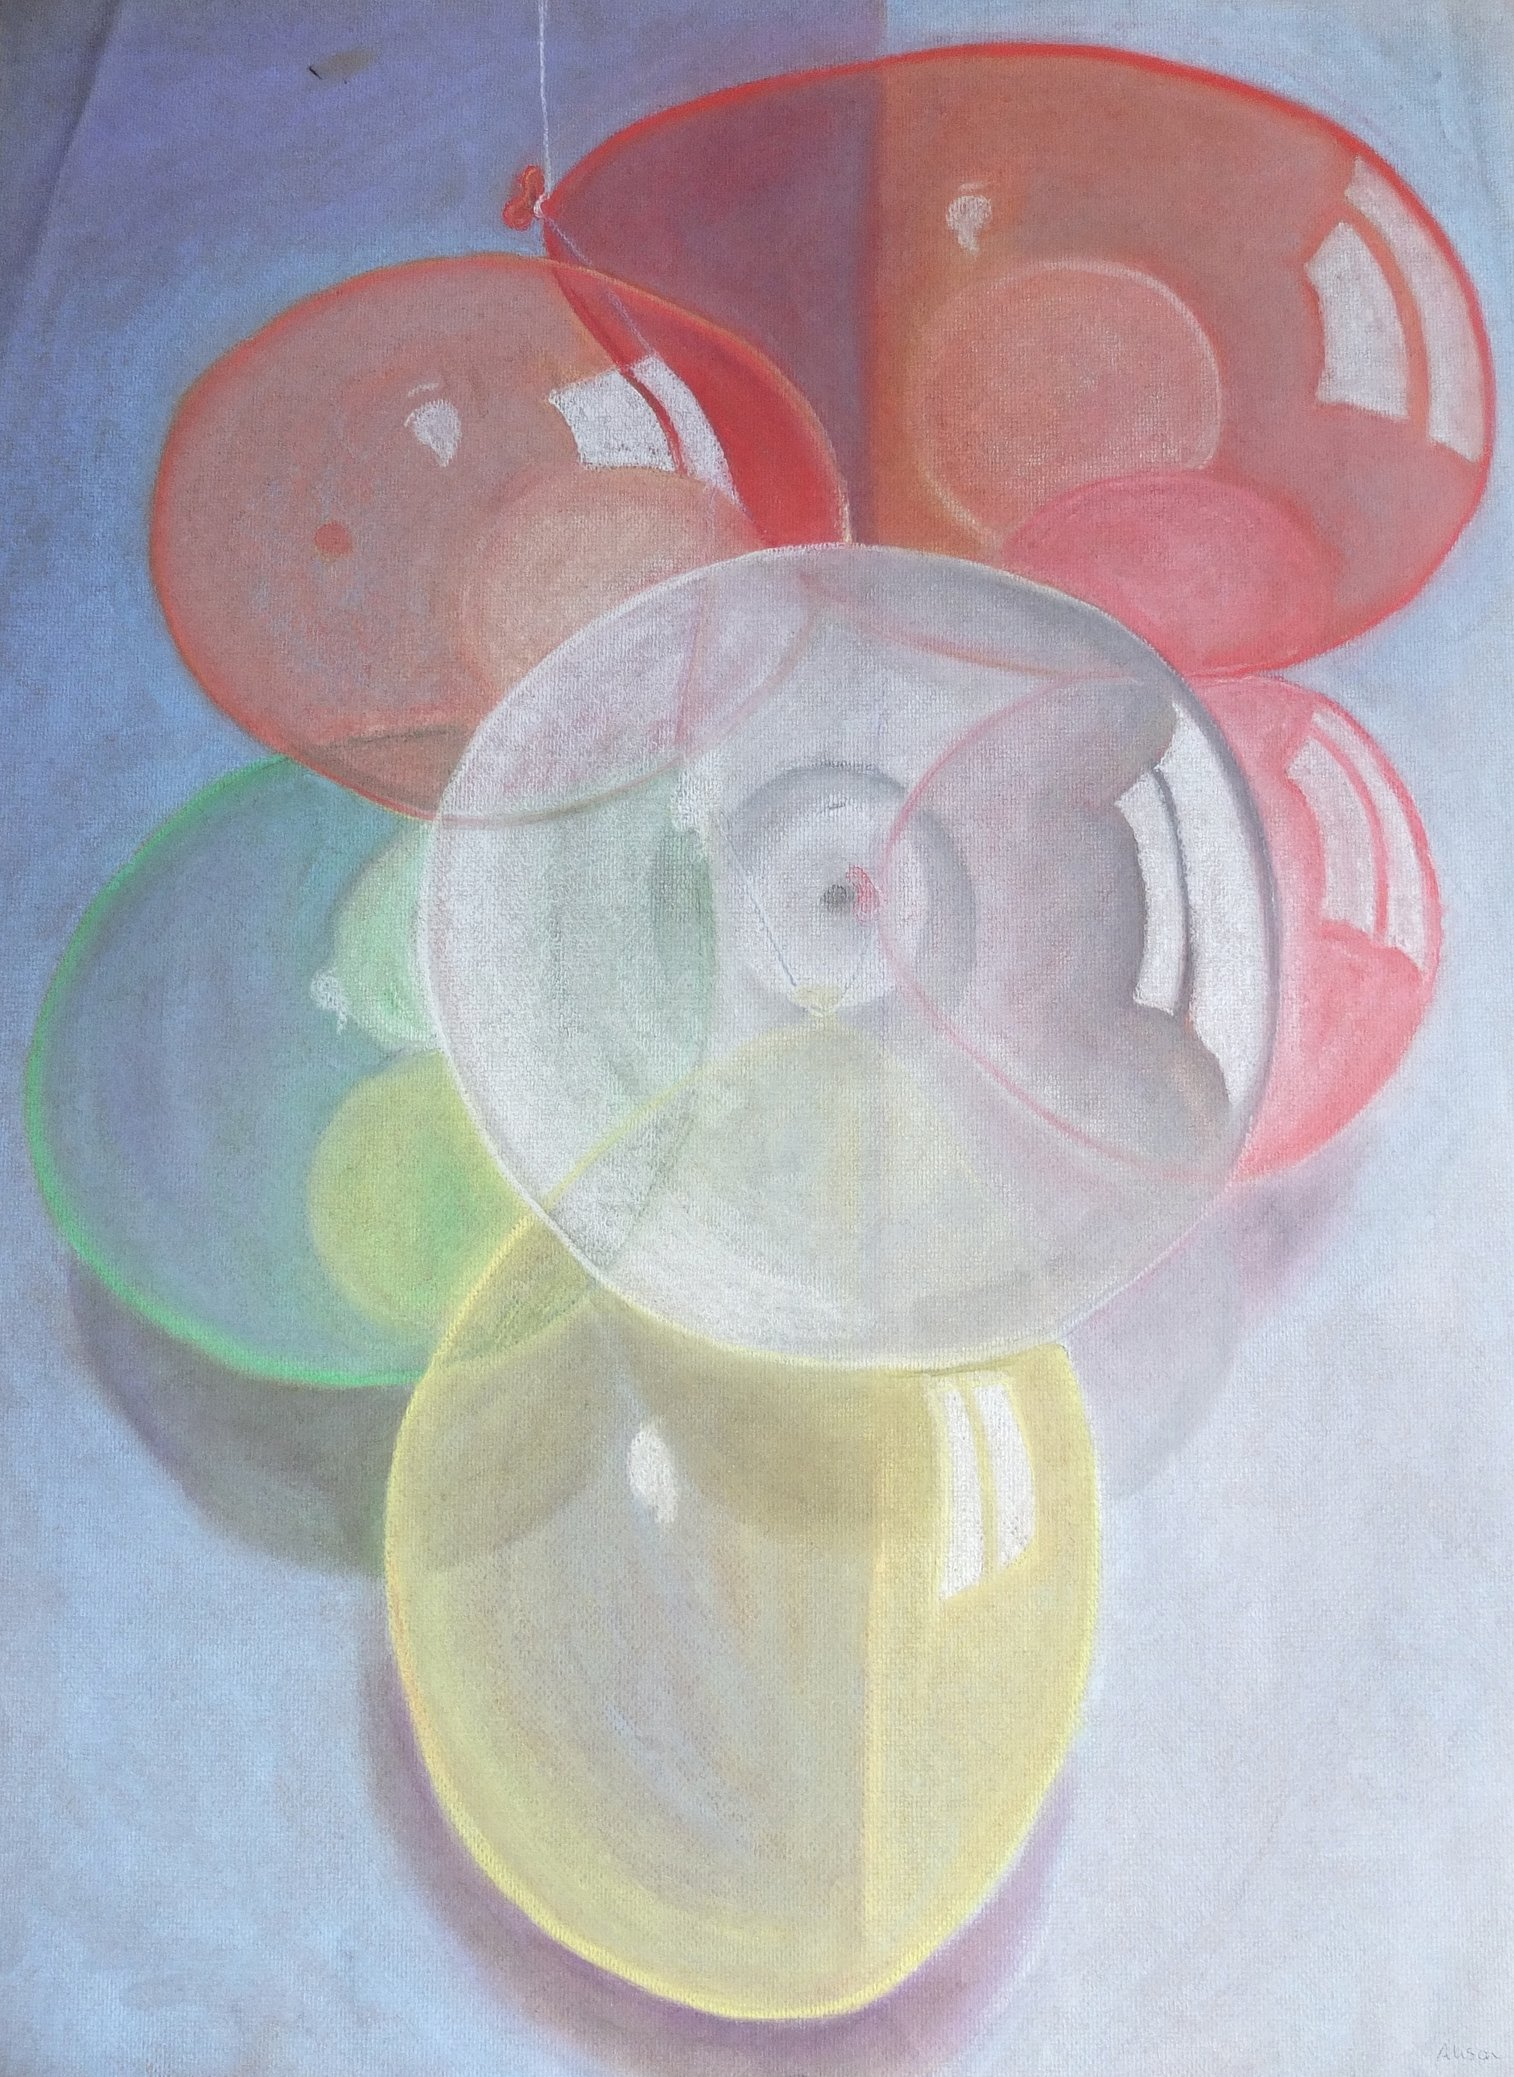 Balloons by Ali Gracie